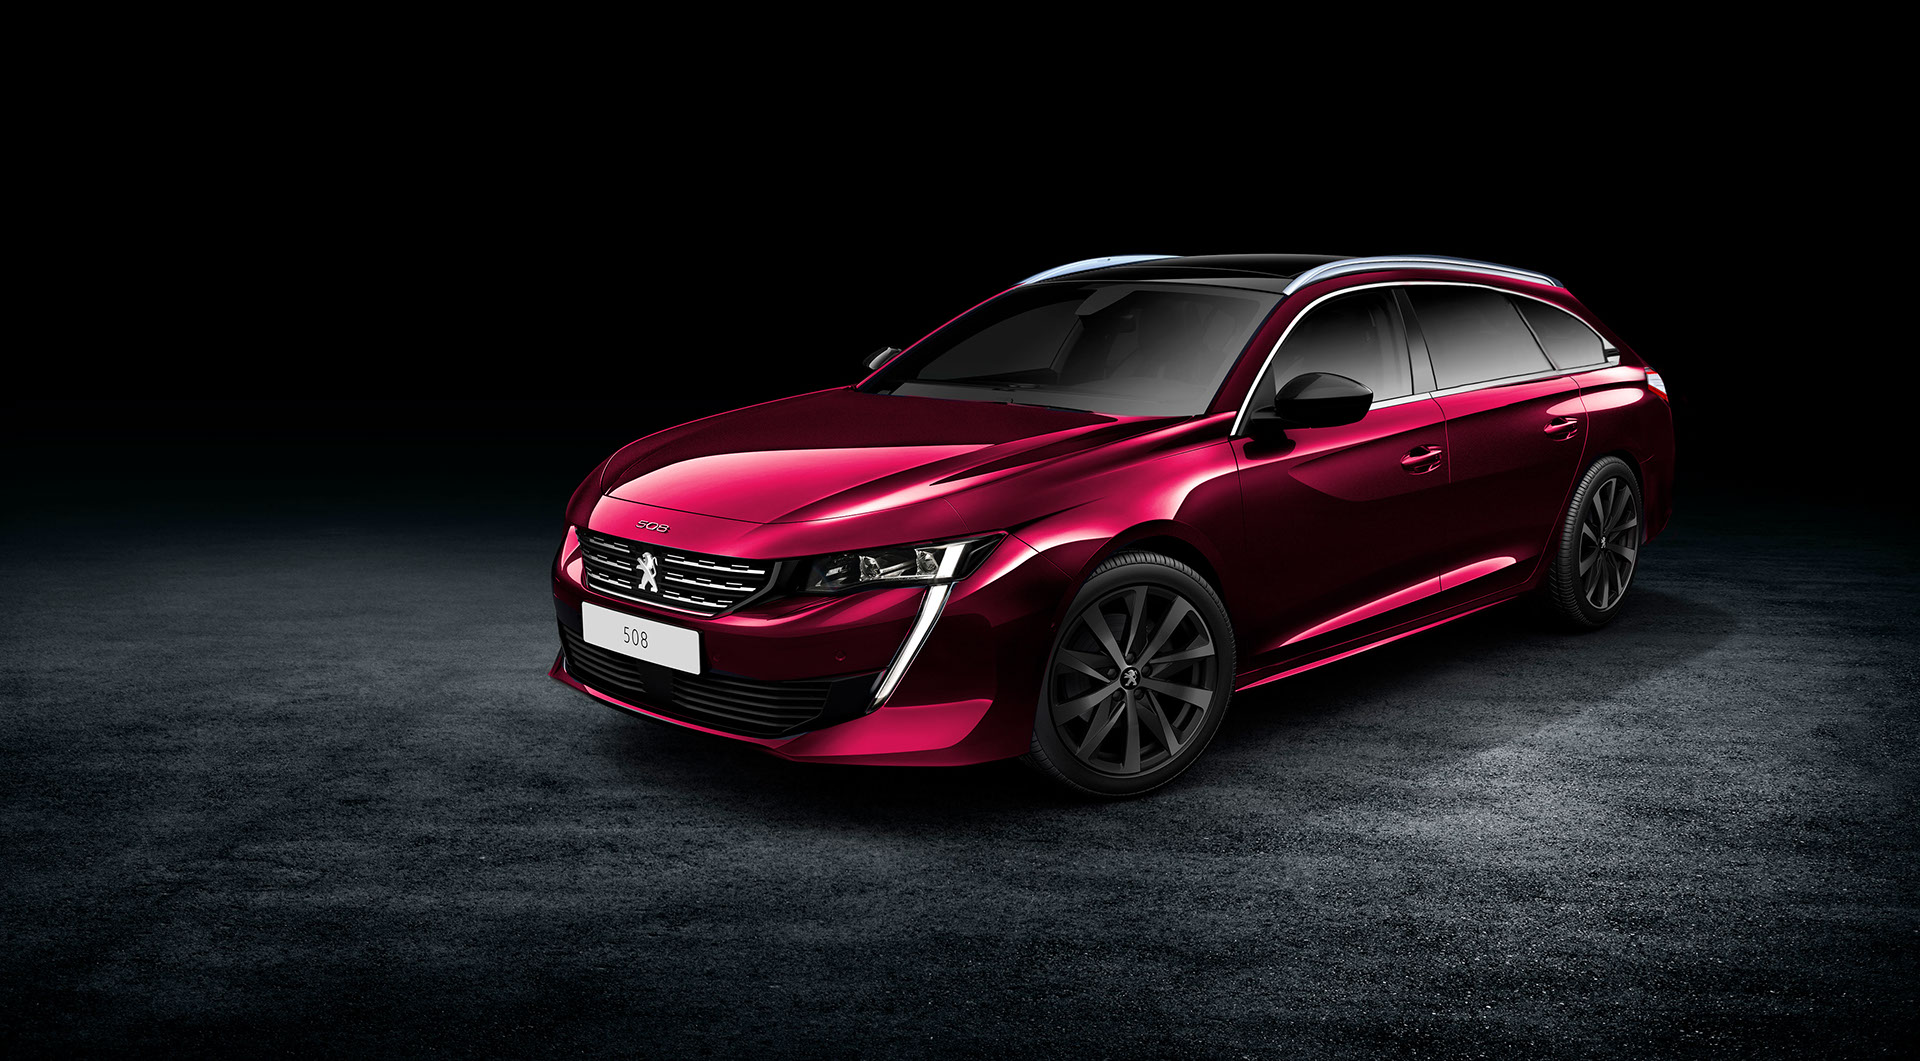 all new peugeot 508 wagon and rxh renderings drive us mad. Black Bedroom Furniture Sets. Home Design Ideas